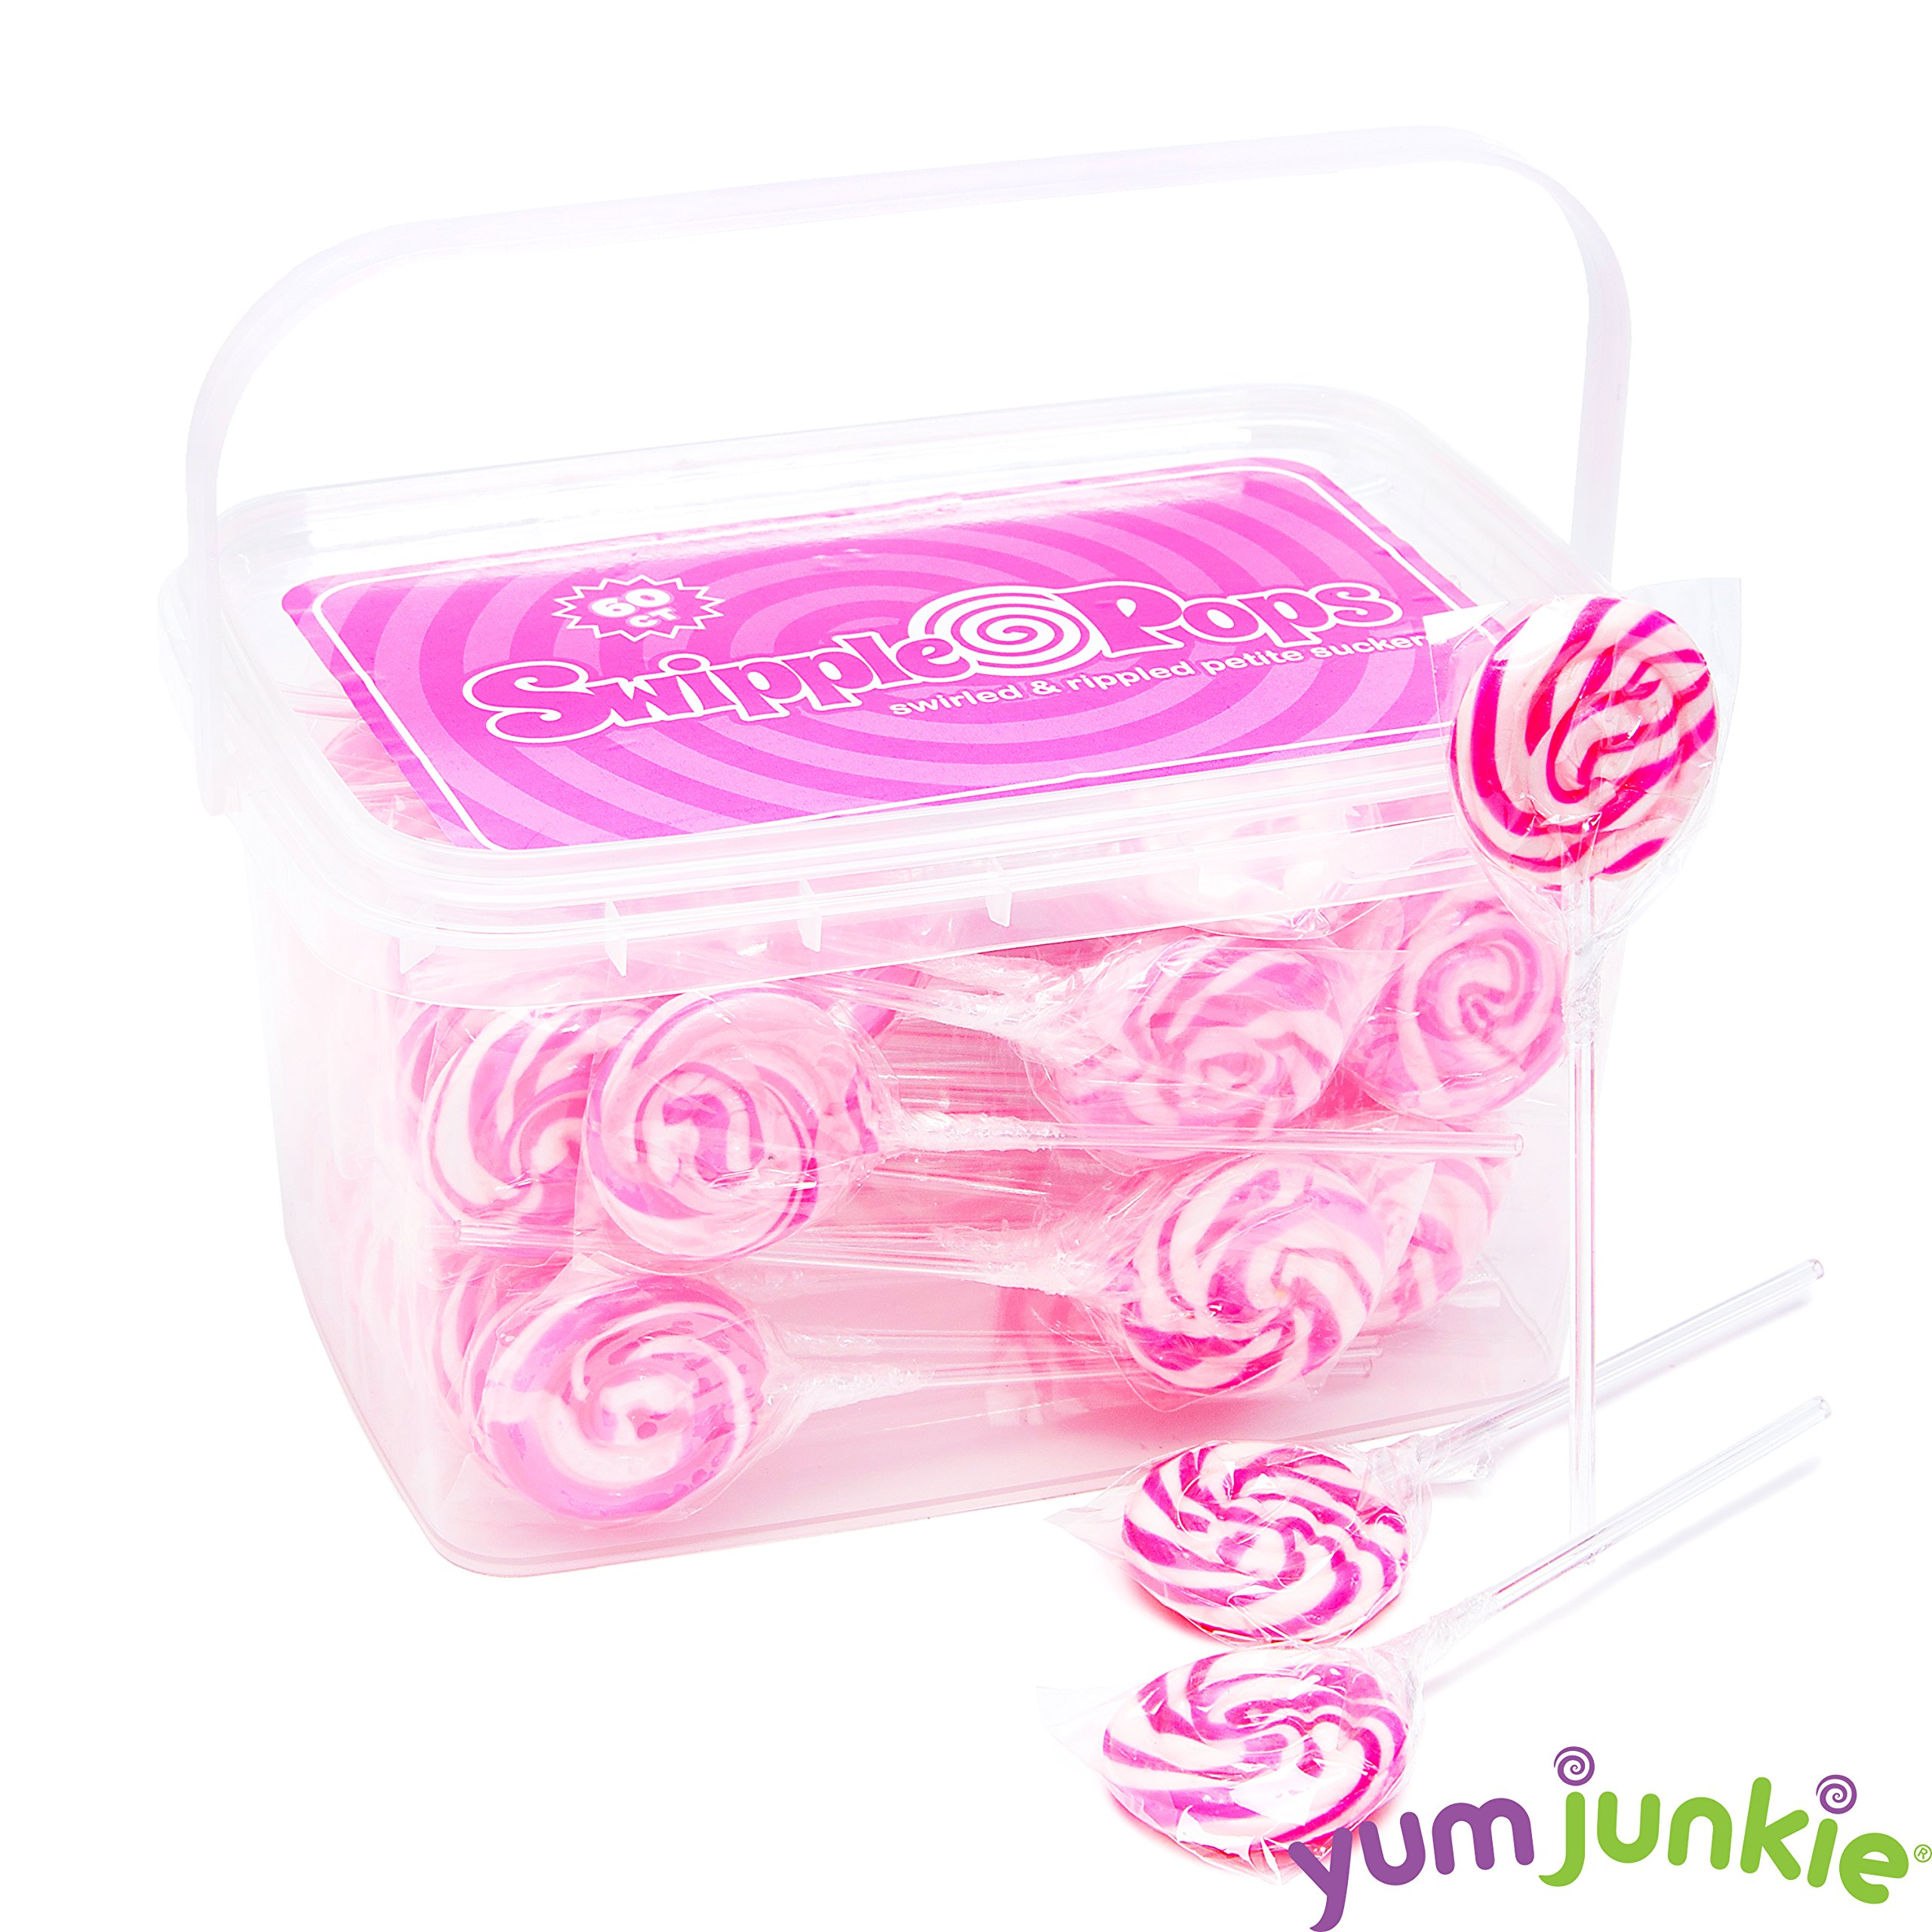 Swipple Pops Petite Swirl Ripple Lollipops - 60-Piece Tub (Pink) by YumJunkie